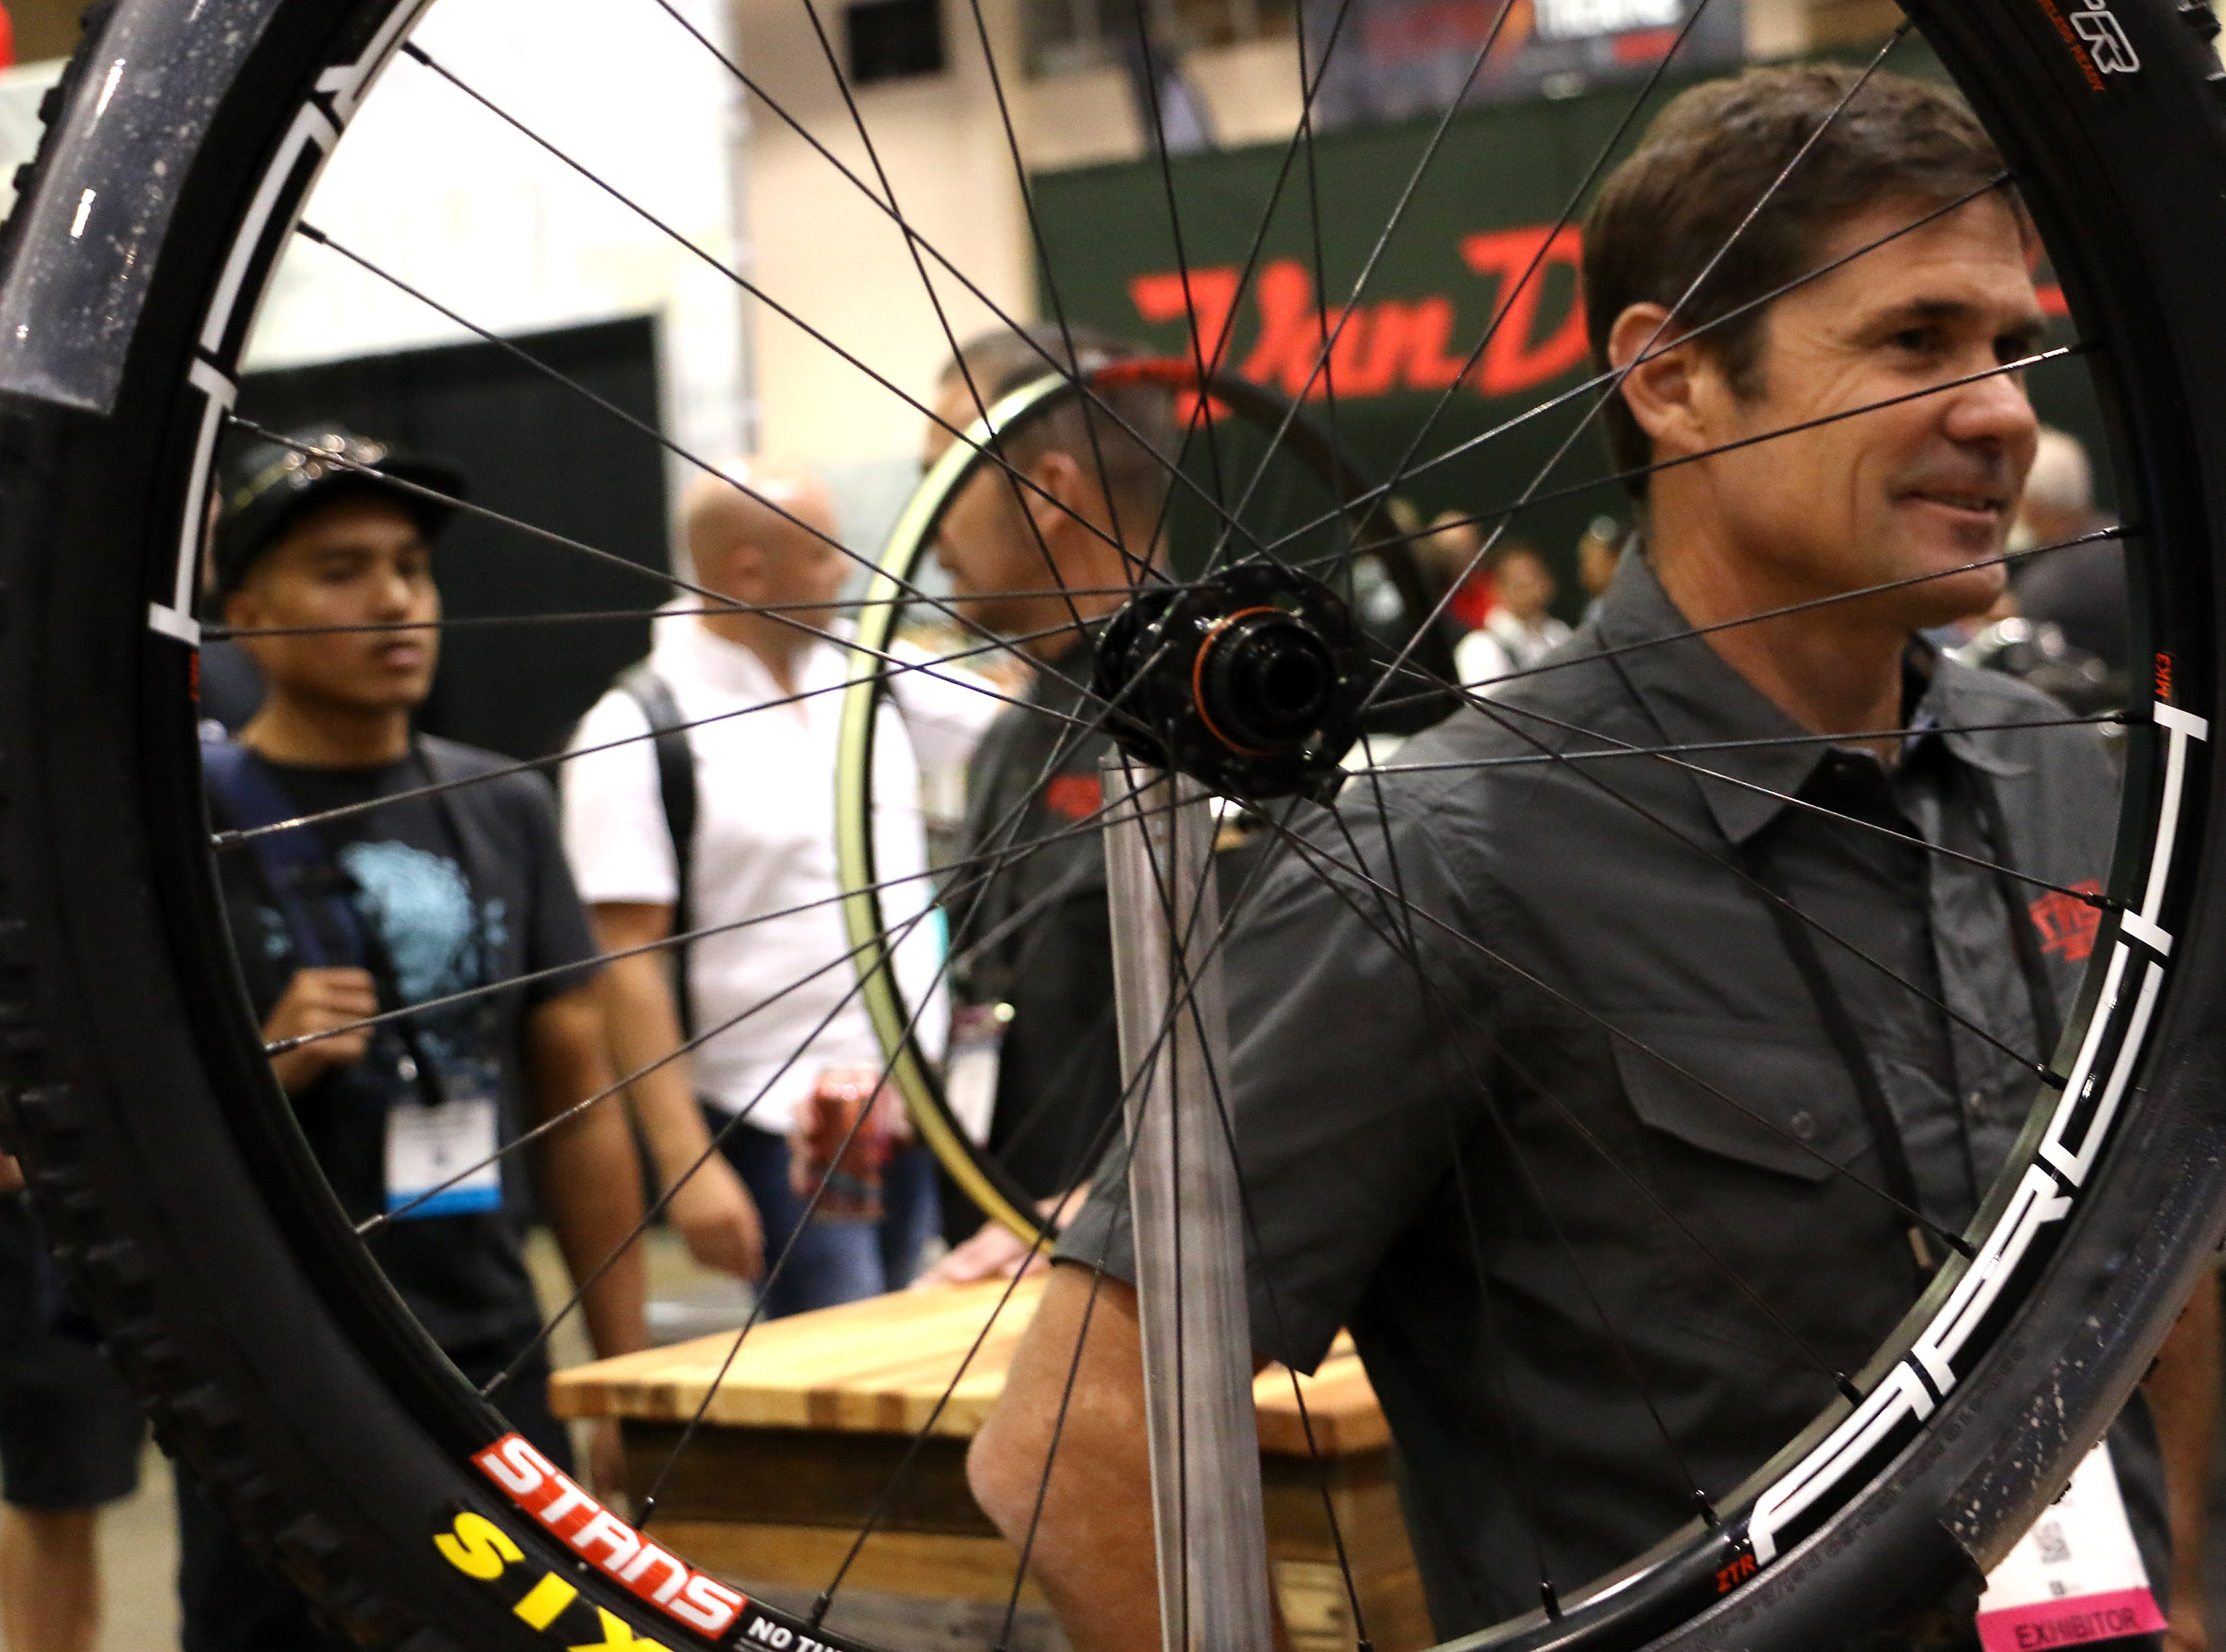 Attendees are seen art the Interbike Expo at the Reno-Sparks Convention Center in Reno on Sept. 19, 2018.